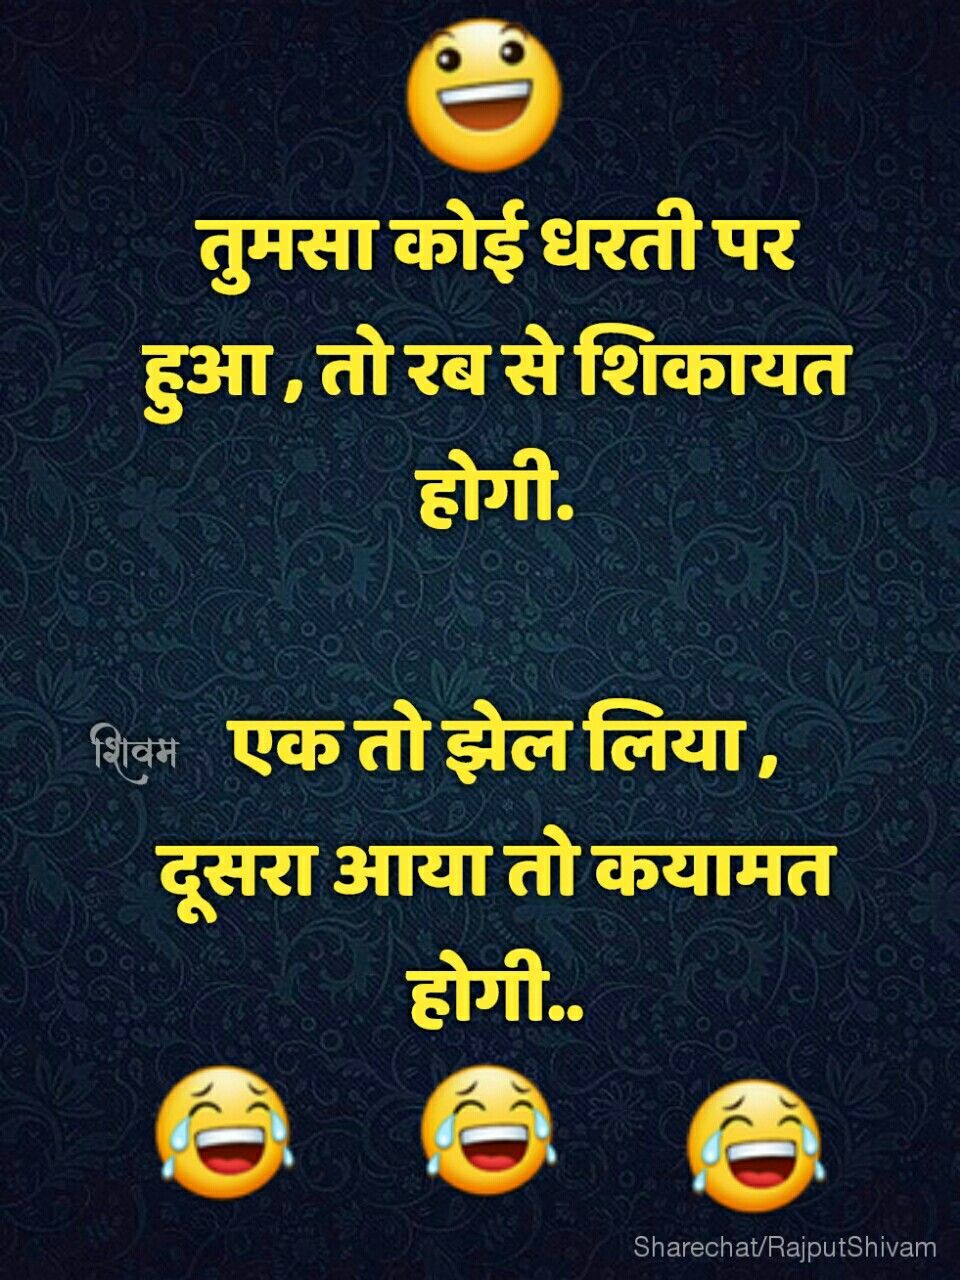 Best Funny Comments On Friends Photos In Hindi : funny, comments, friends, photos, hindi, #jokeInHindi, #hindijoke, #shayri, #ShivamR7, Funny, Quotes,, Friendship, Quotes, Funny,